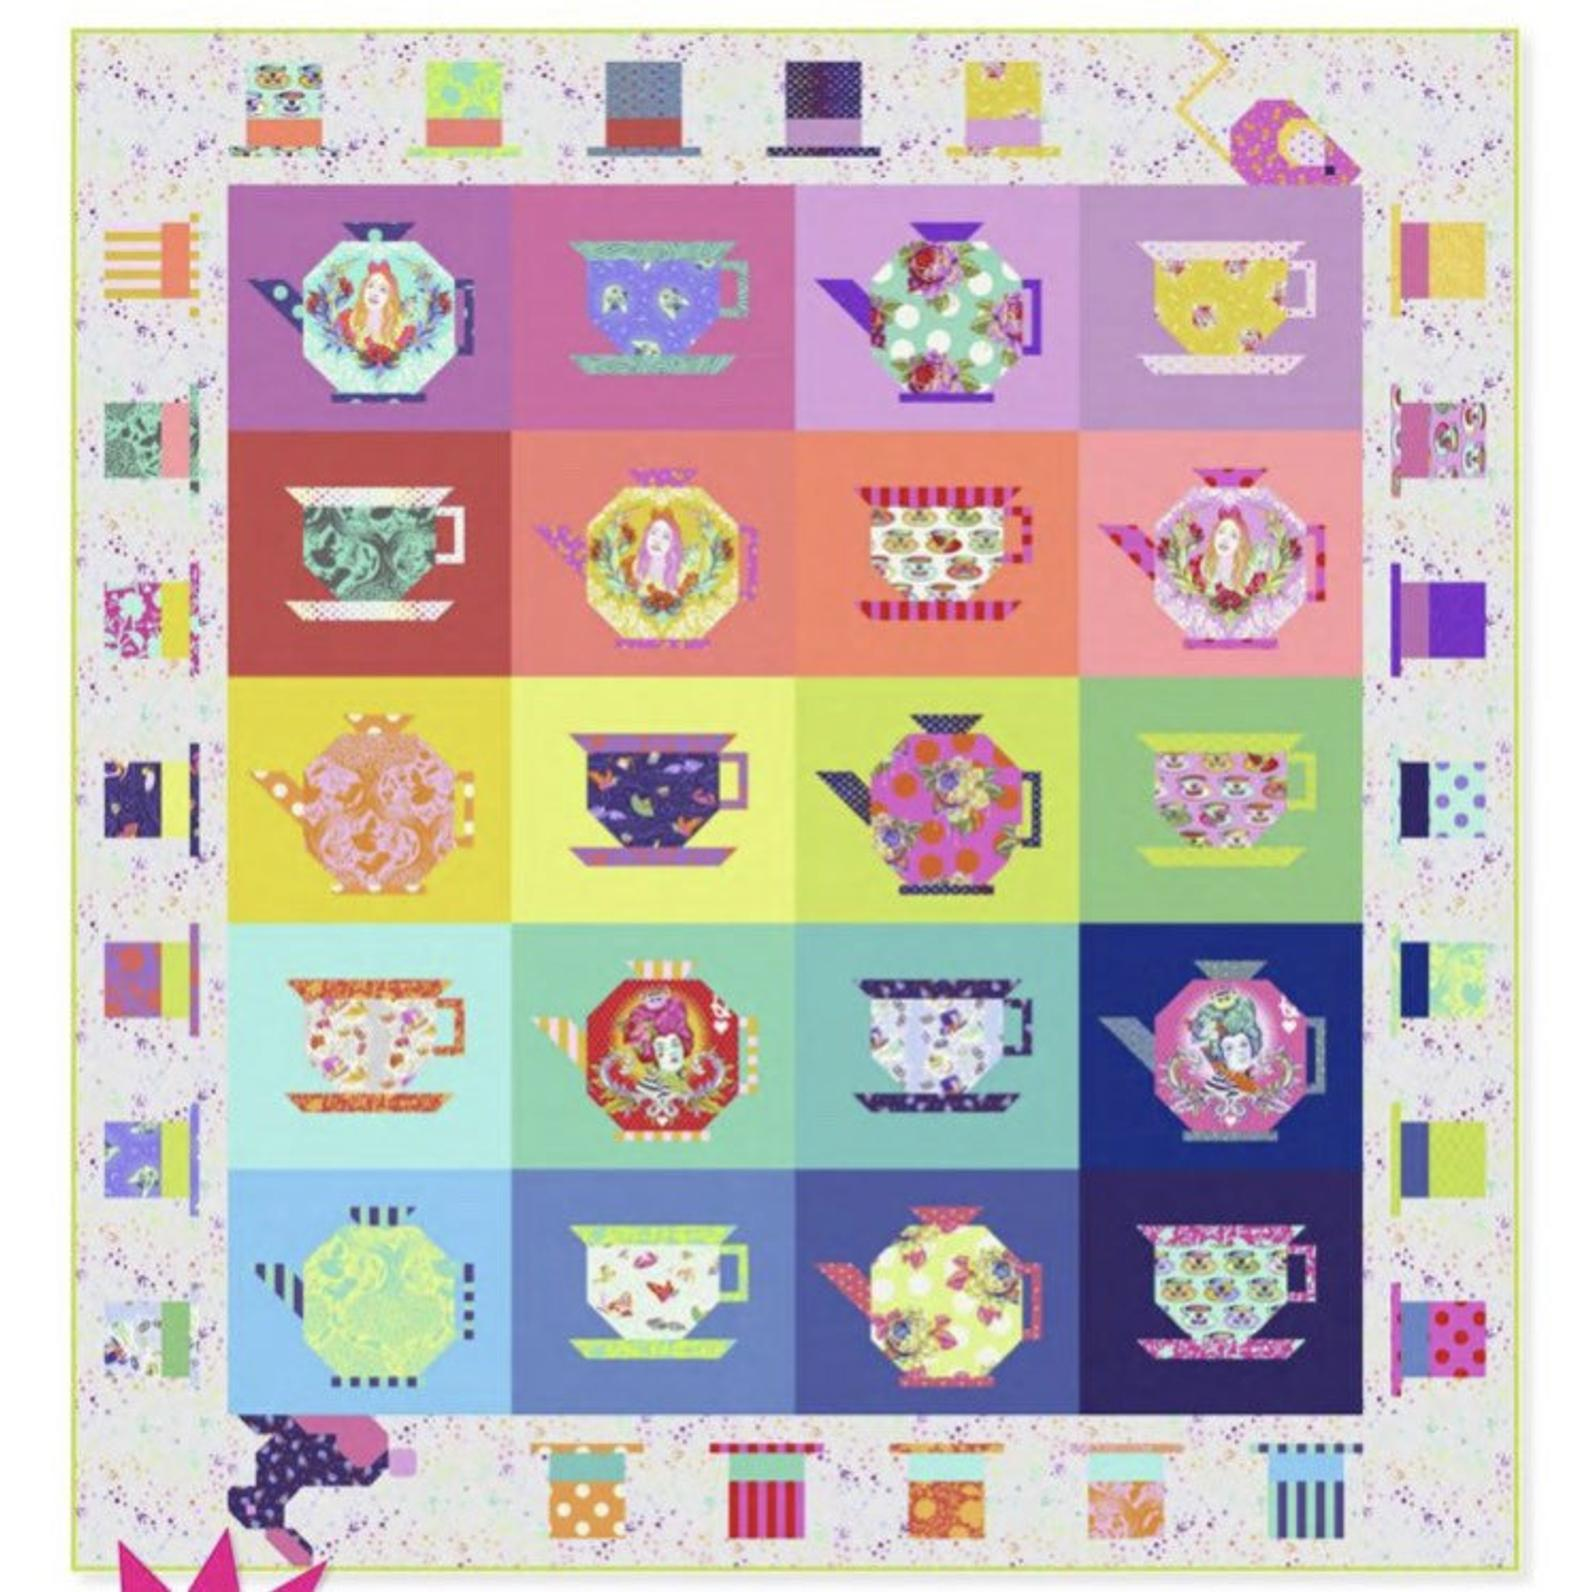 Curiouser  Tea party- Quilt Kit PRE- ORDER Available end of April / MAY